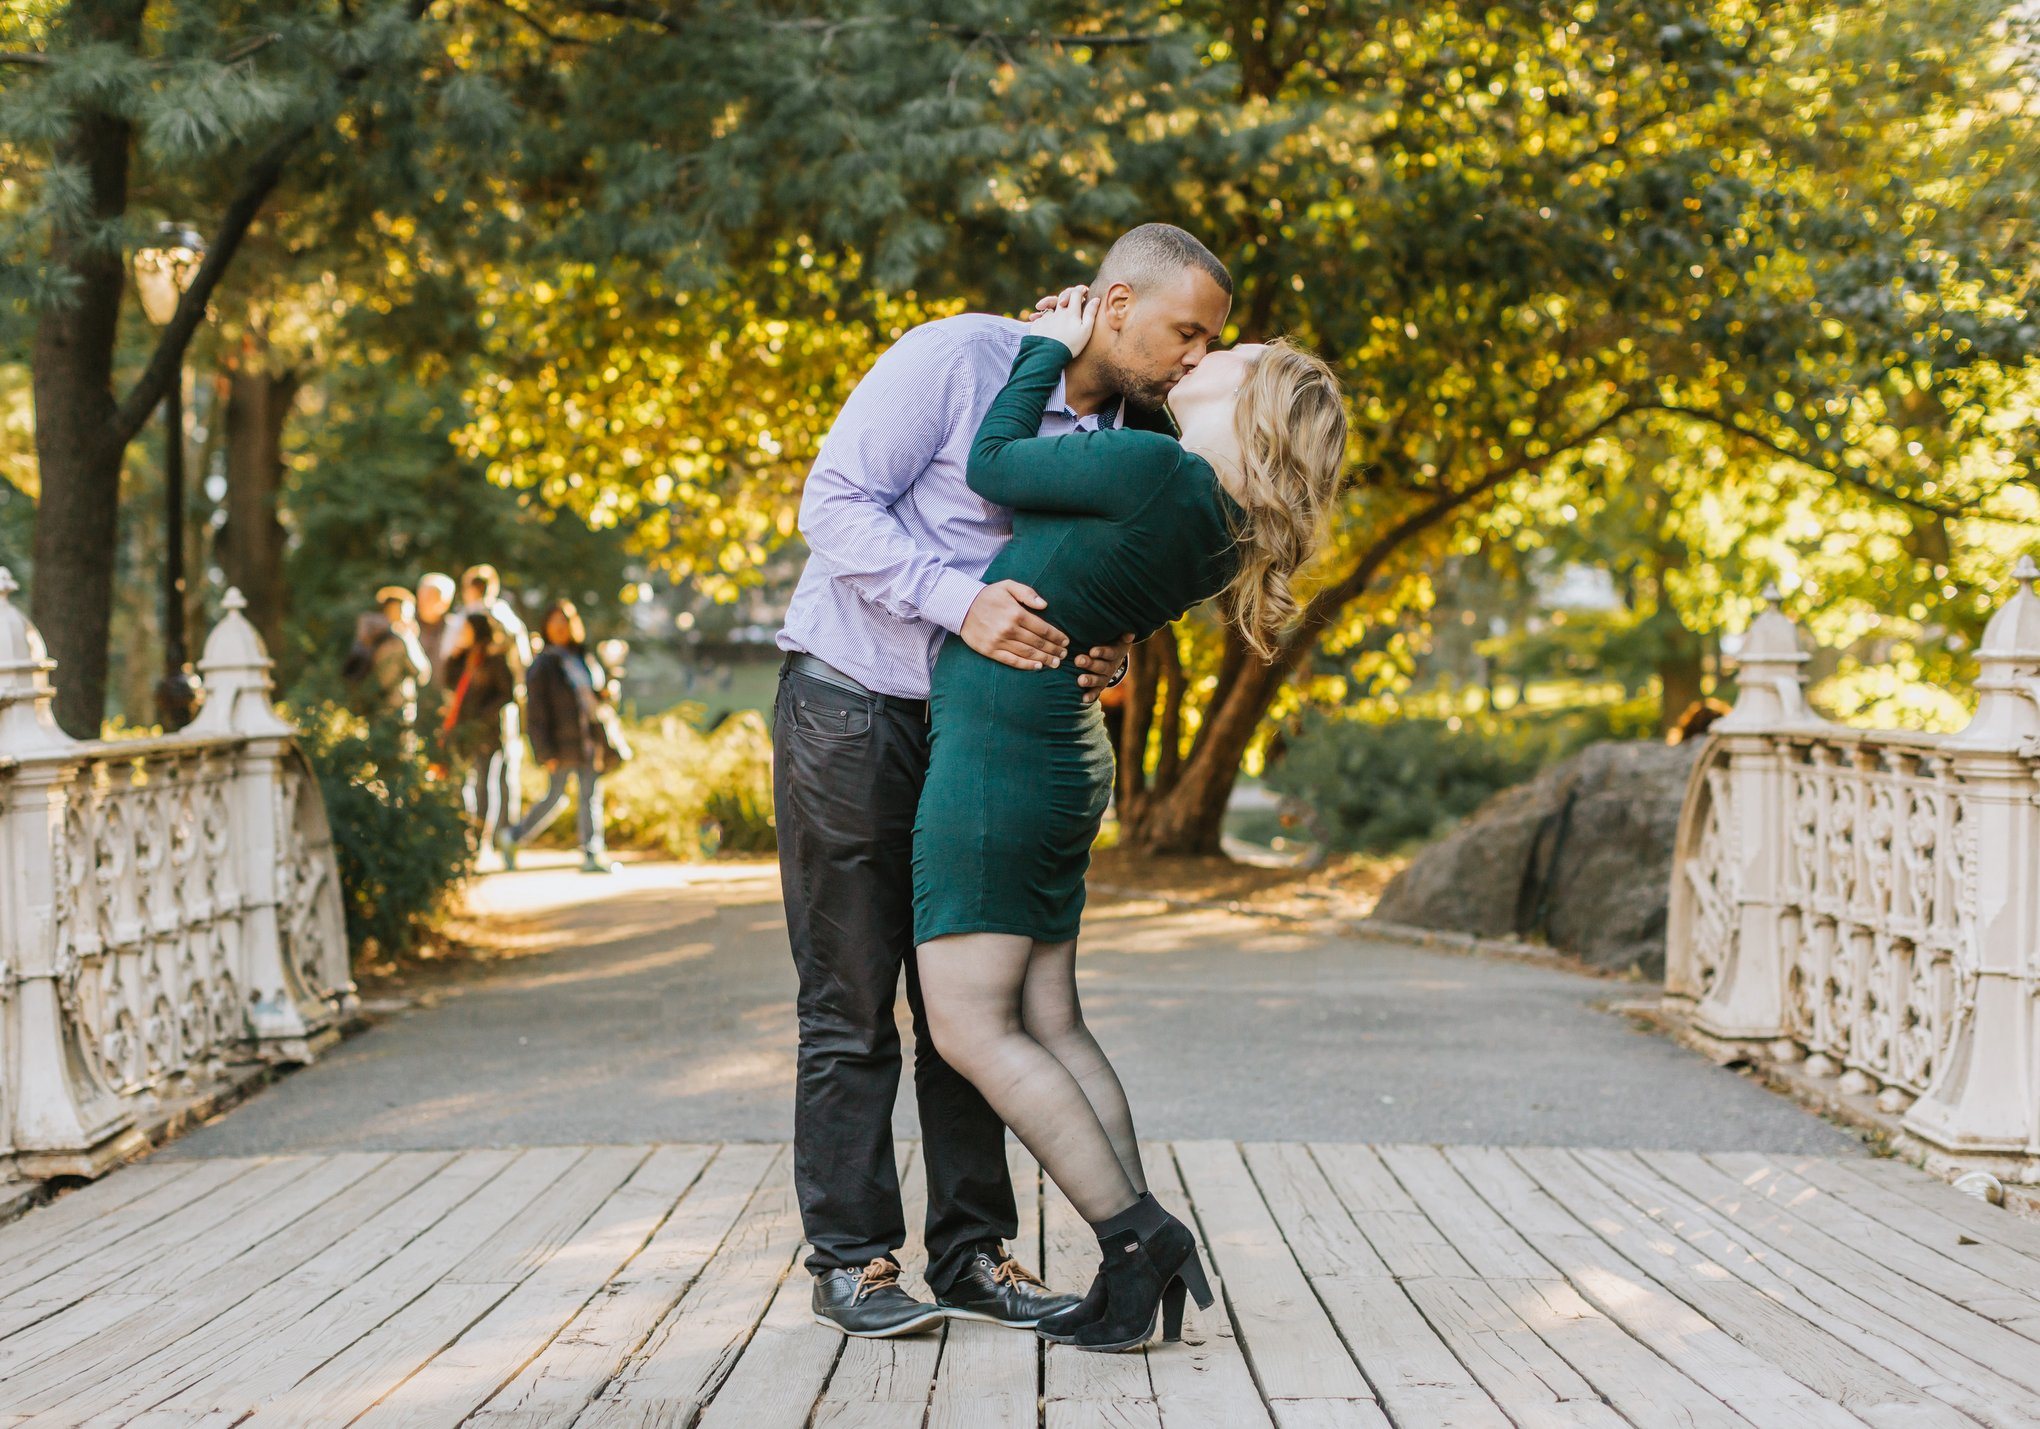 NYC_Engagement_Photographer-13.jpg